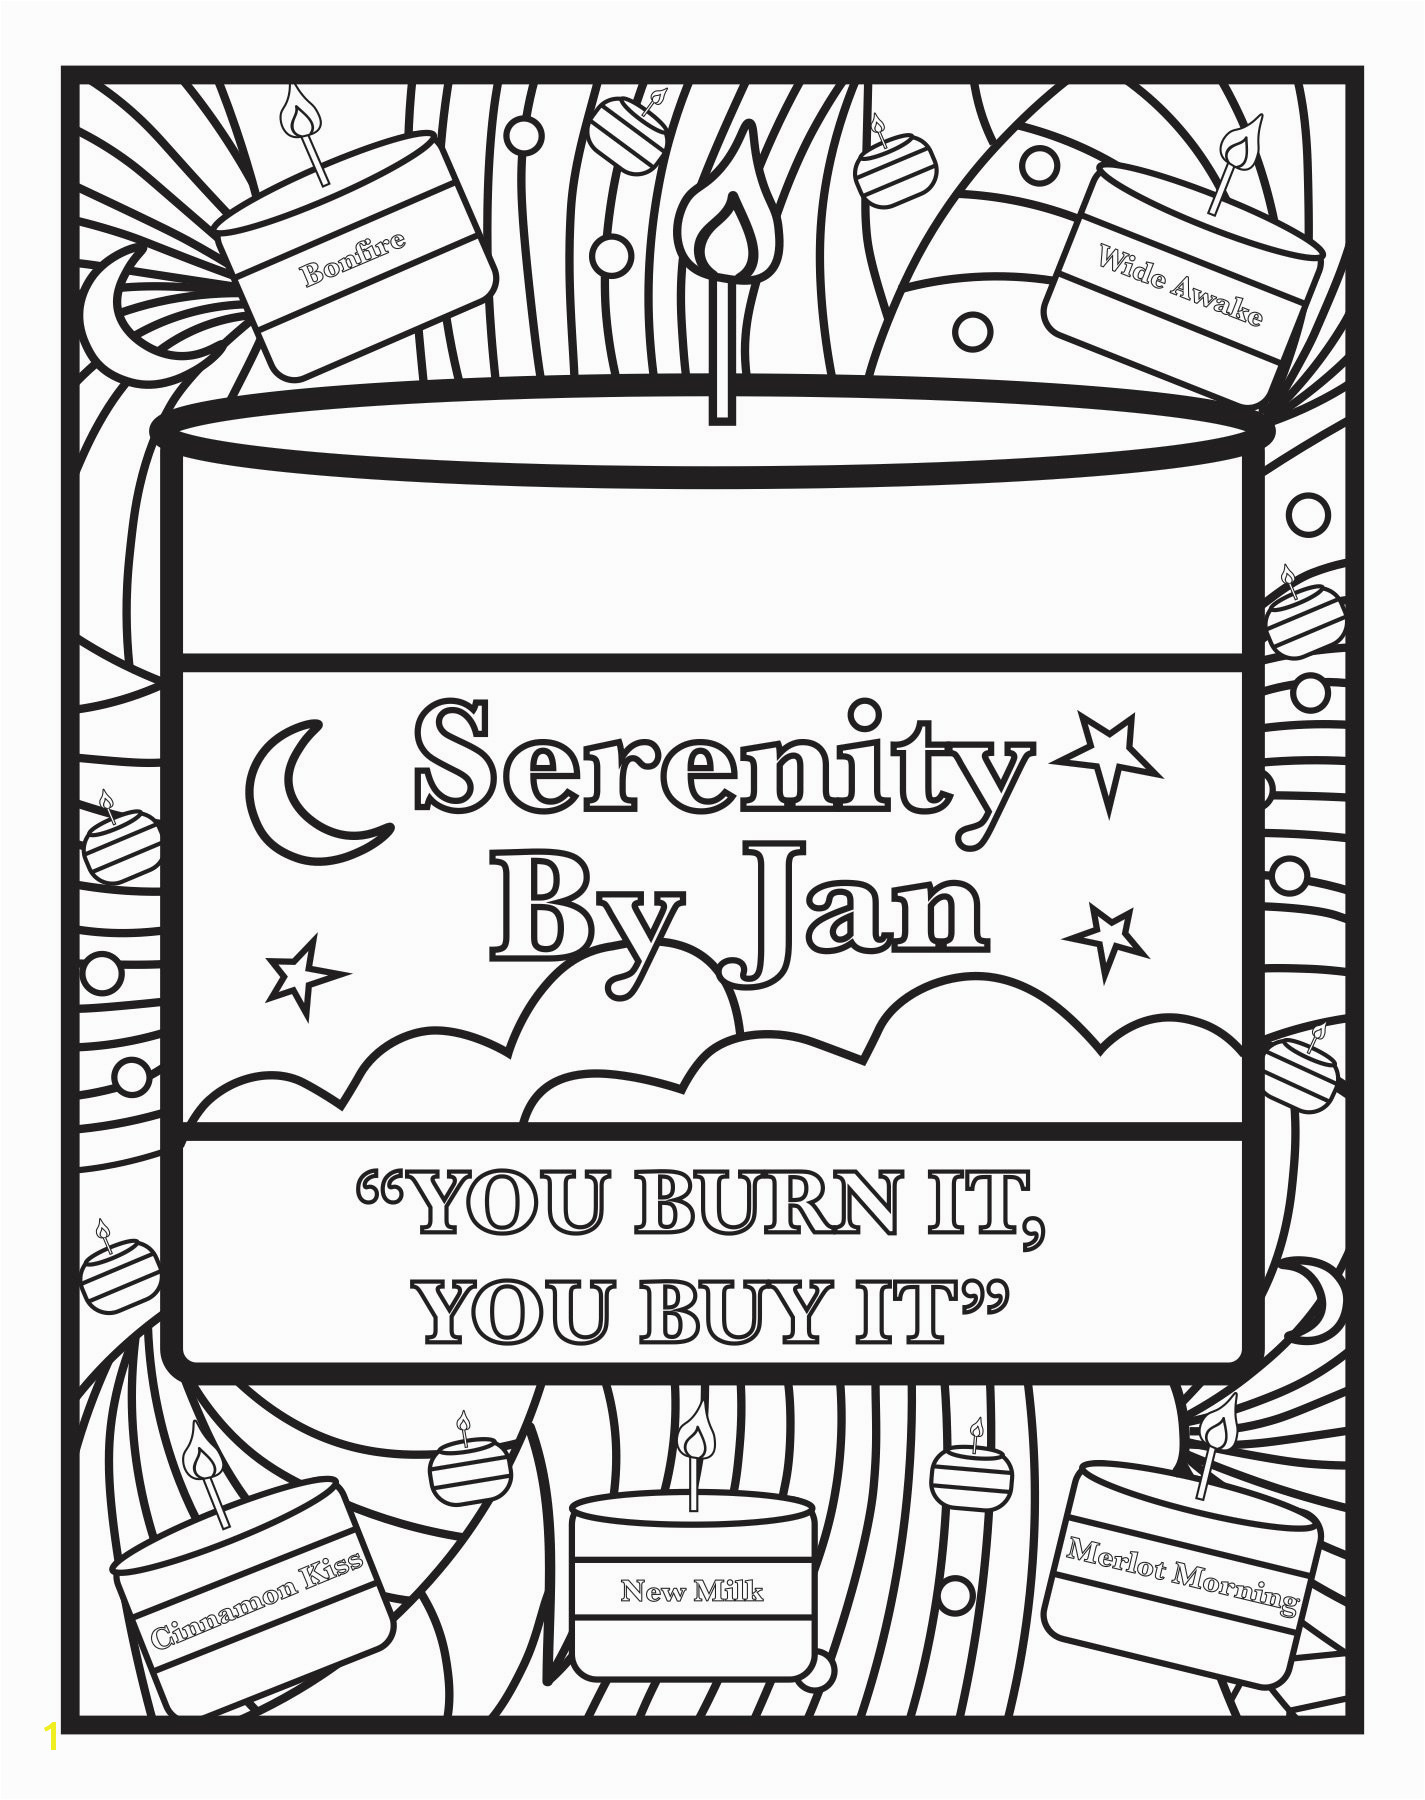 The Office Tv Show Coloring Pages Popcolors Practically Punny In Every Way